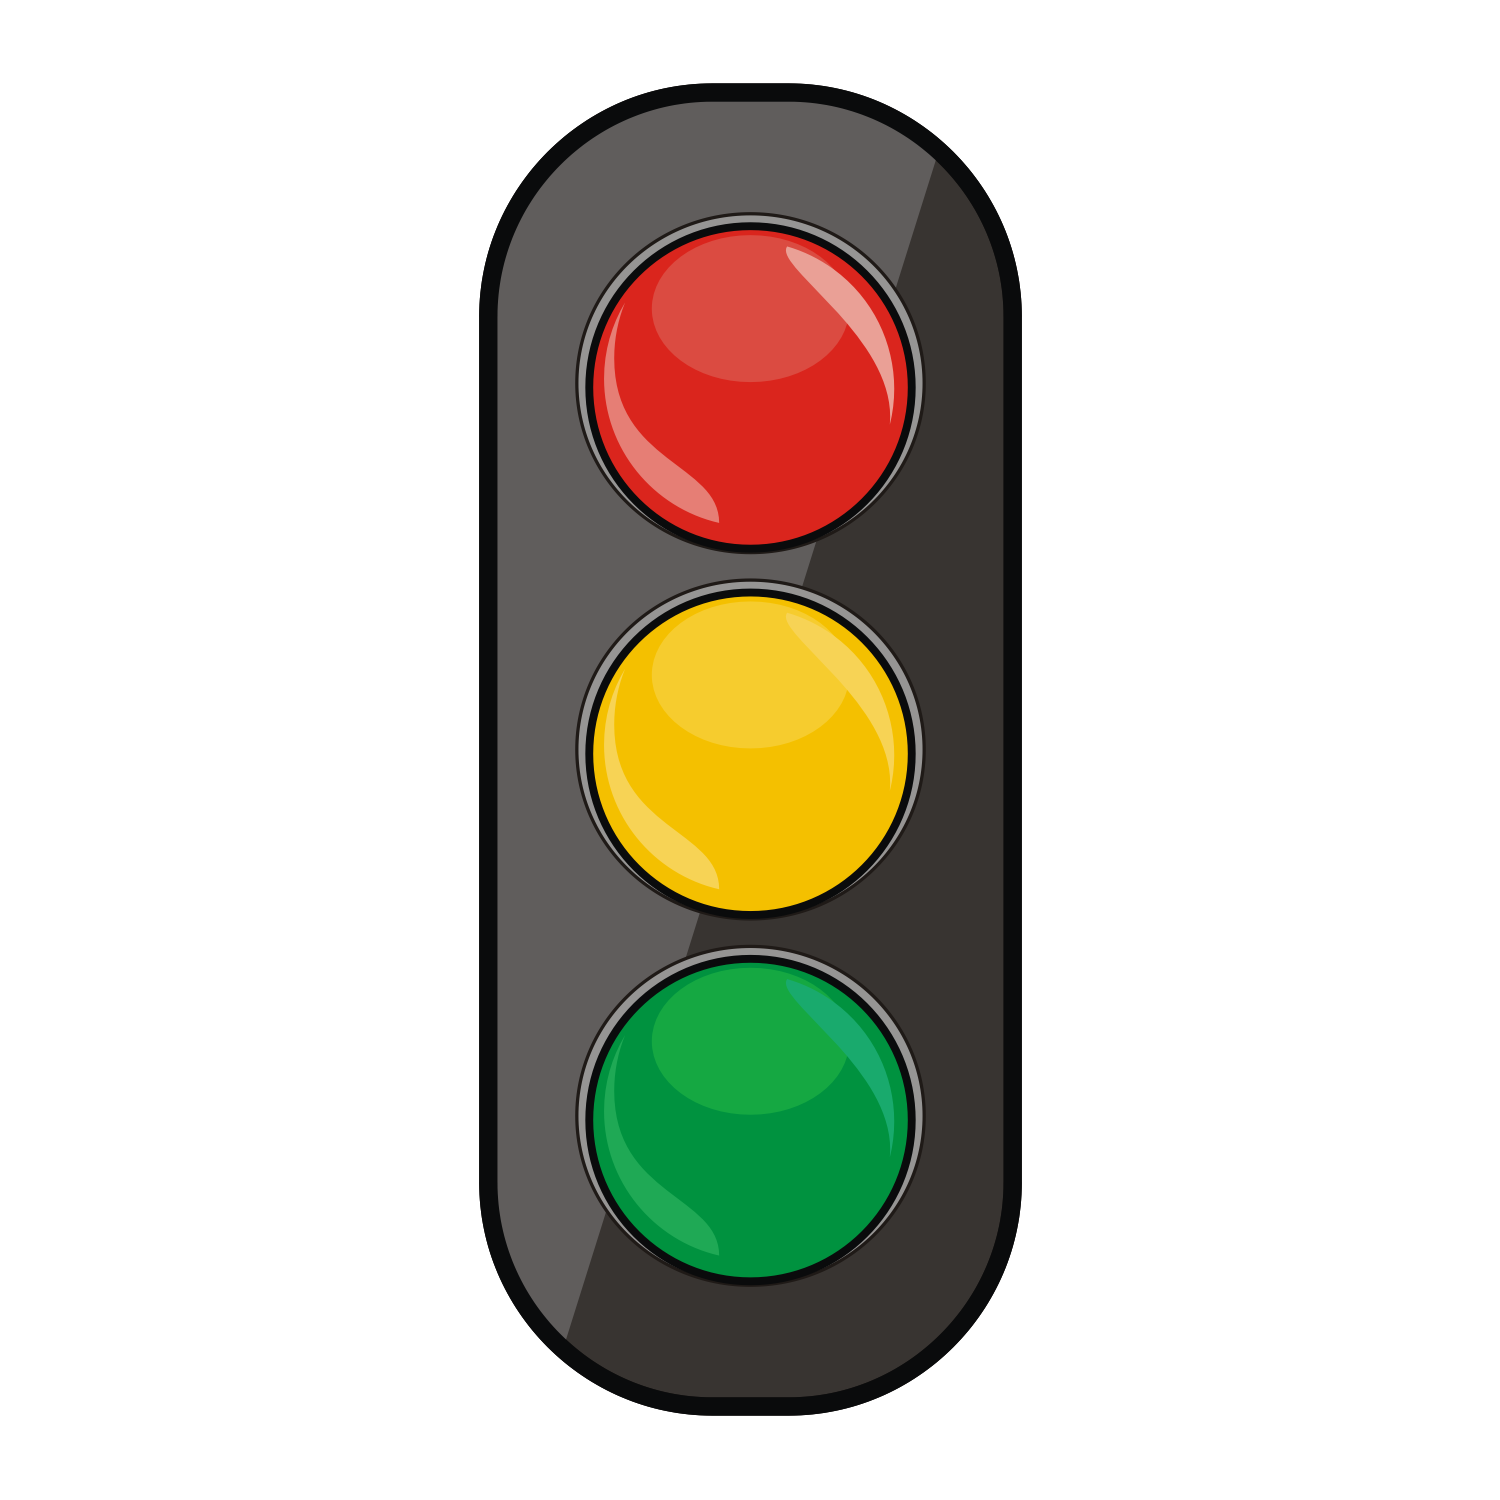 Traffic light clipart free download.